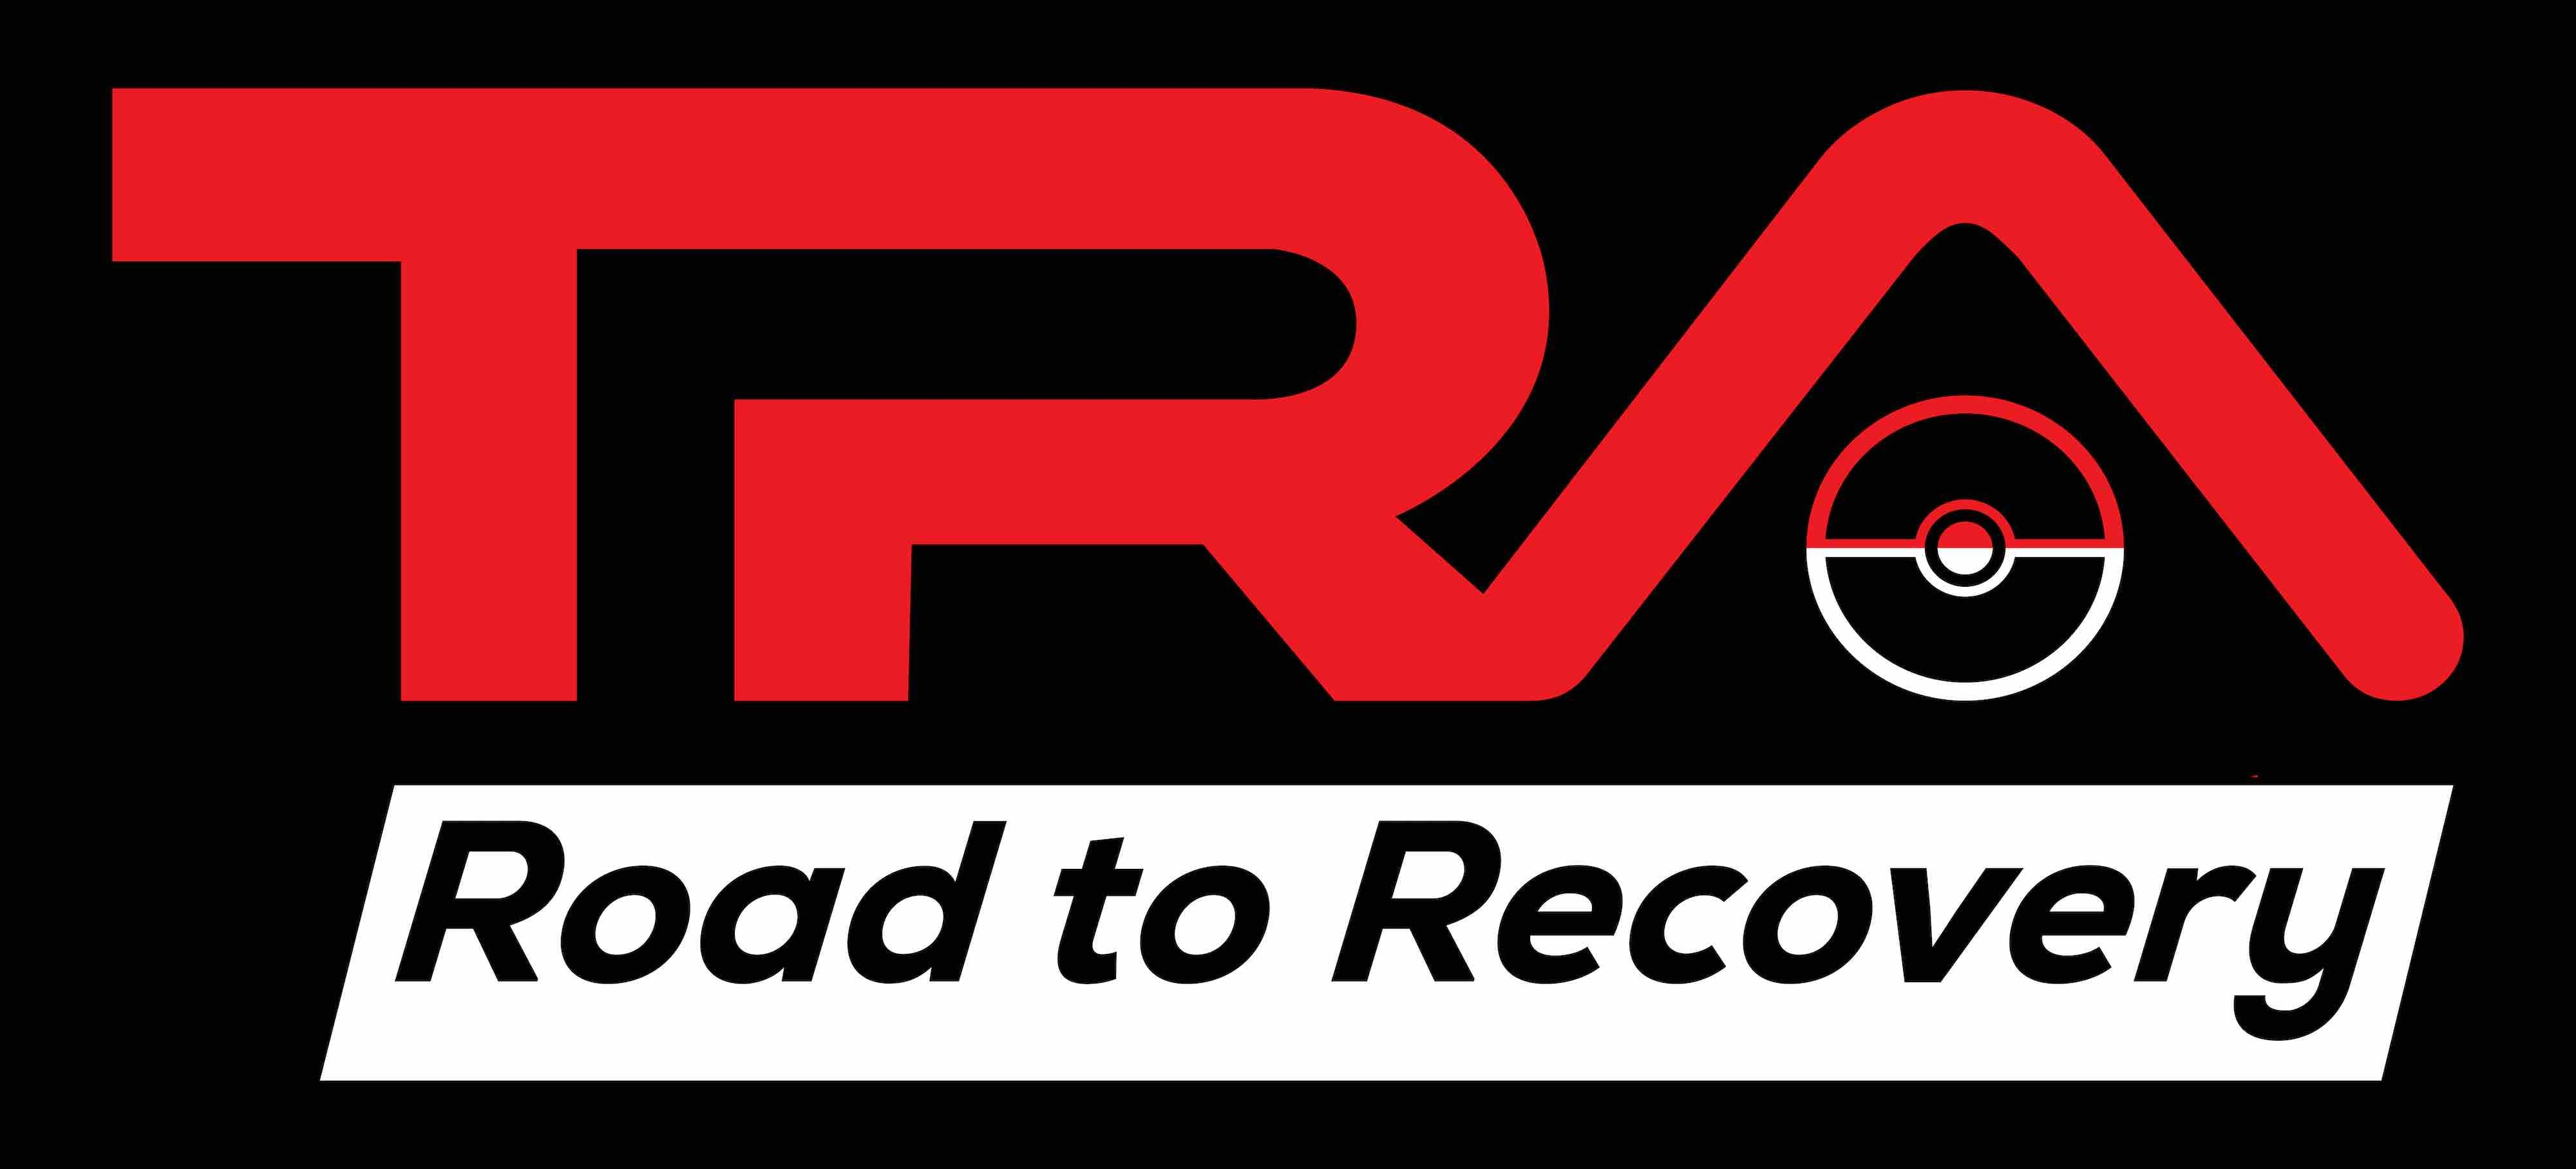 TRA Road To Recovery logo image